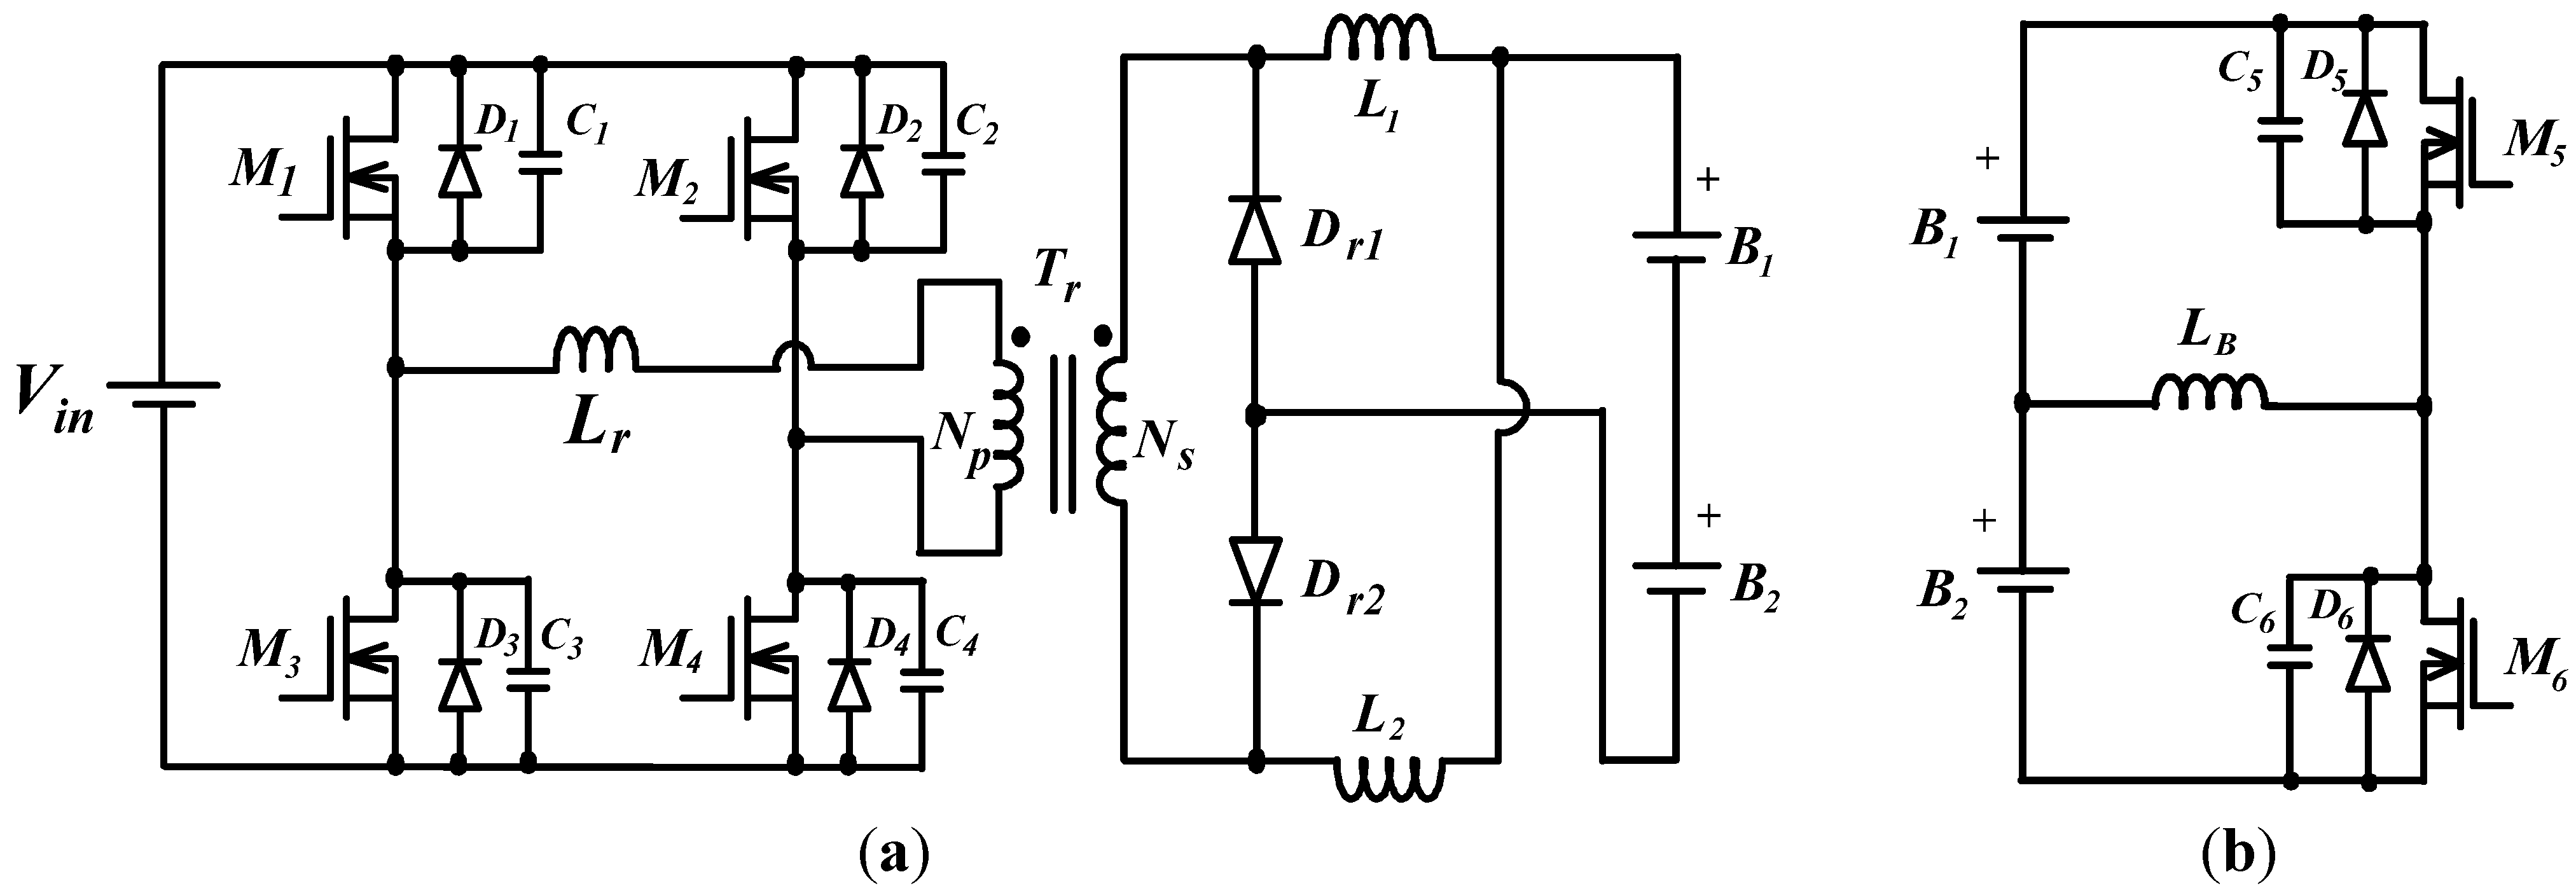 Energies Free Full Text Energy Storage System With Voltage Electronic Canary Circuit No